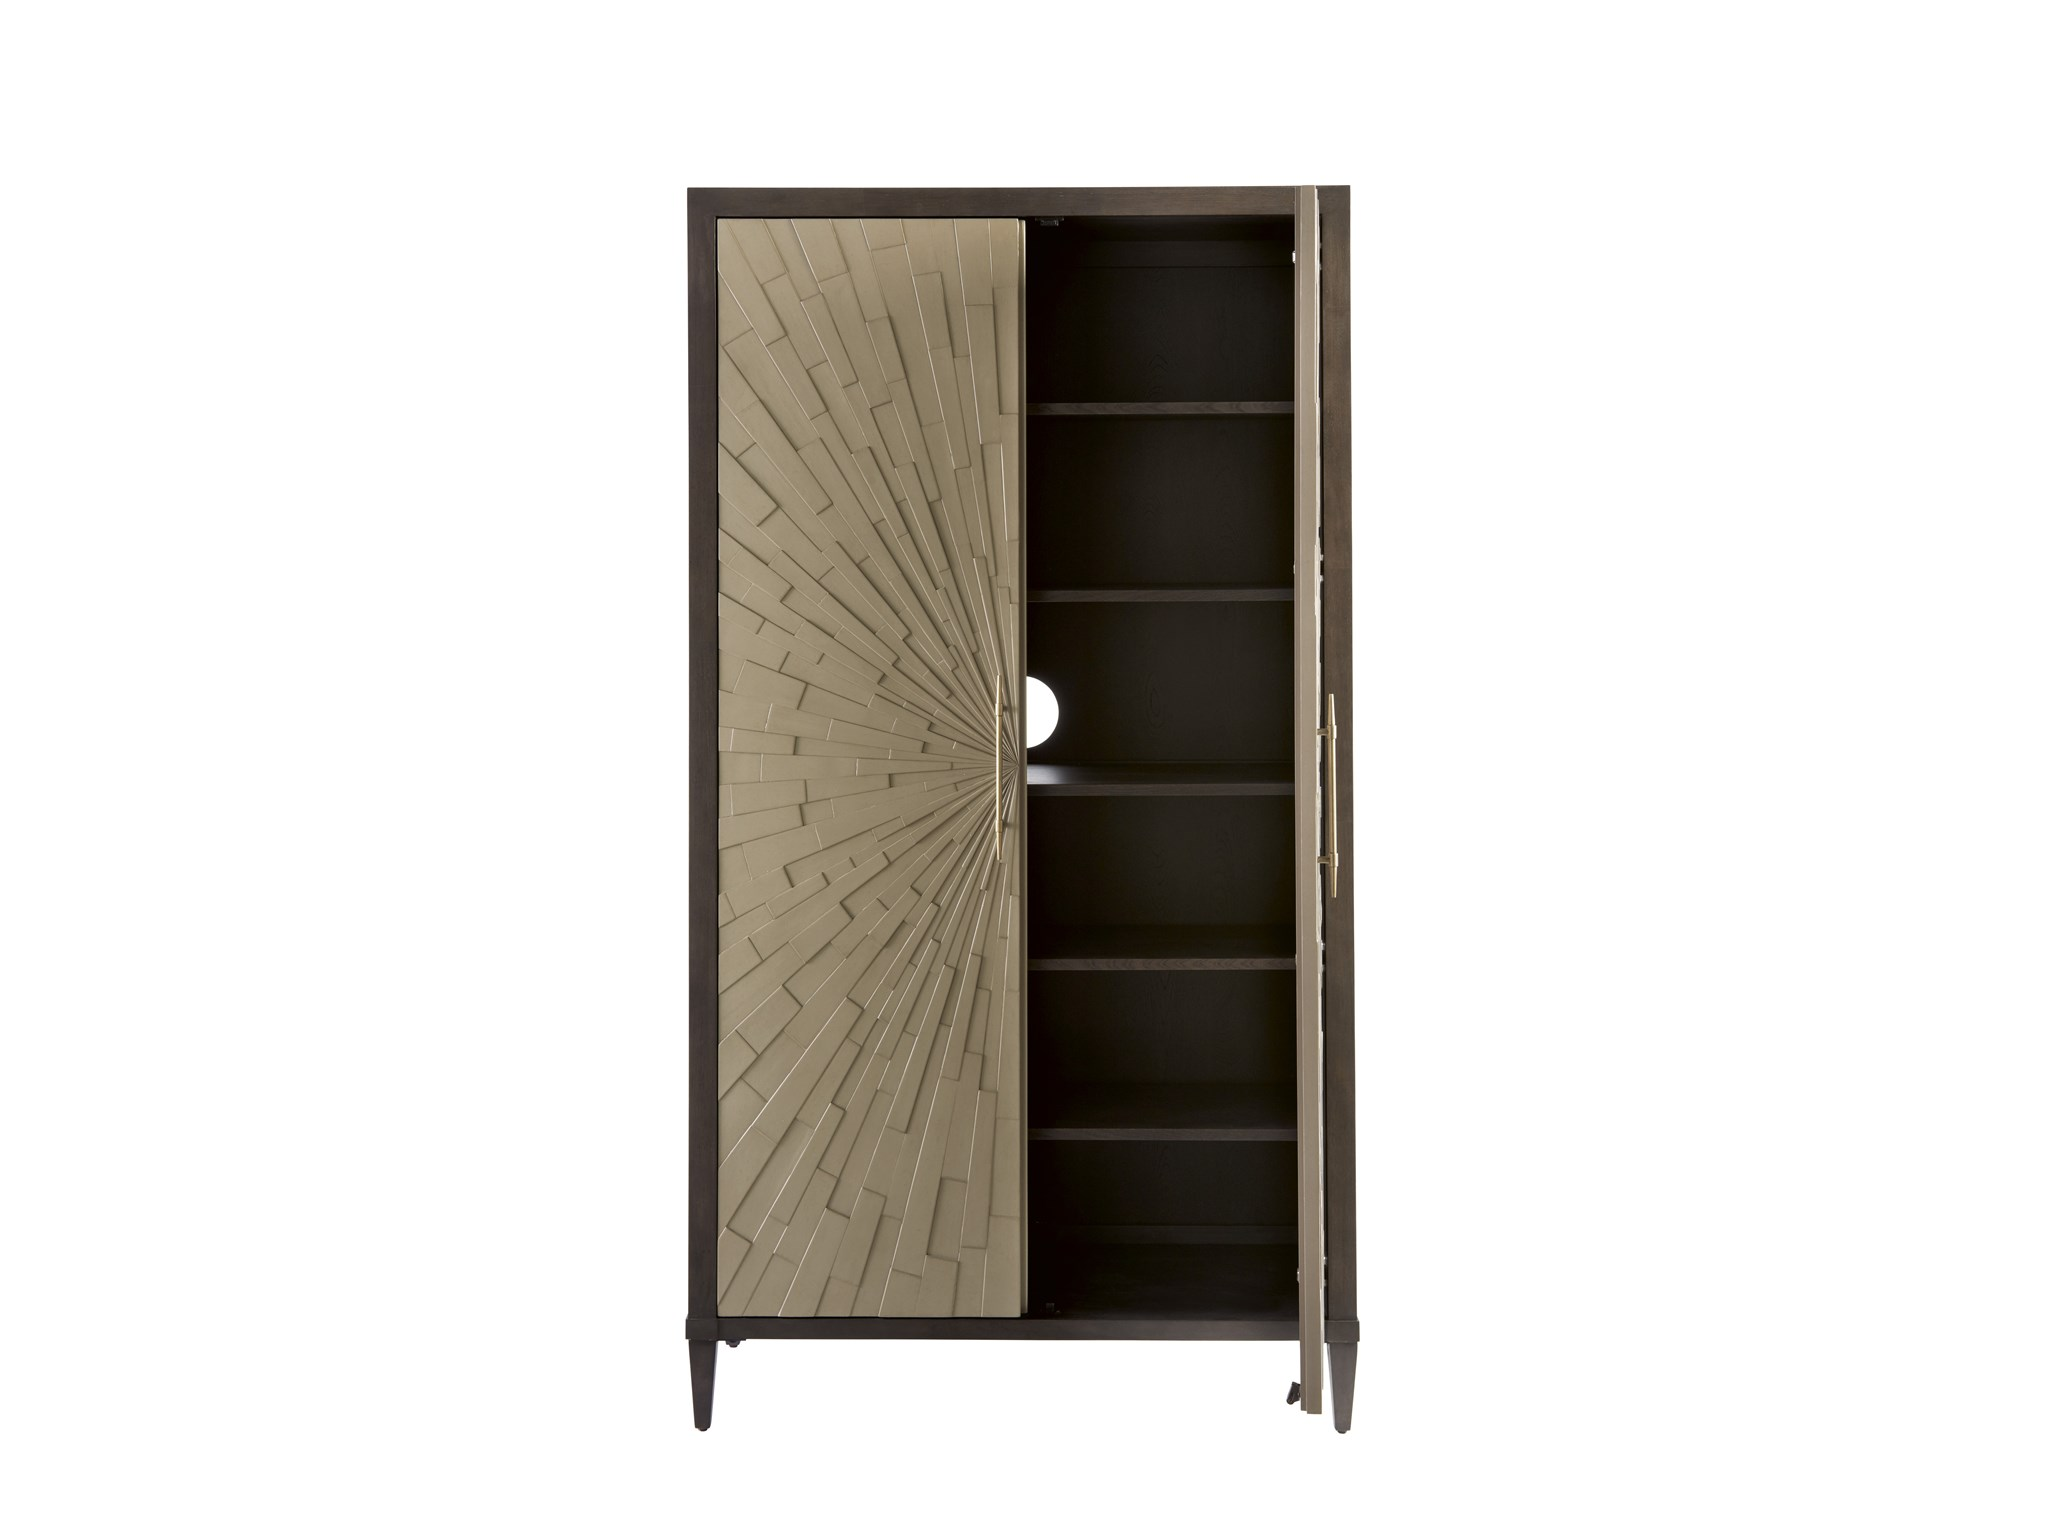 Dimension Armoire Universal Furniture Soliloquy Soliloquy Armoire